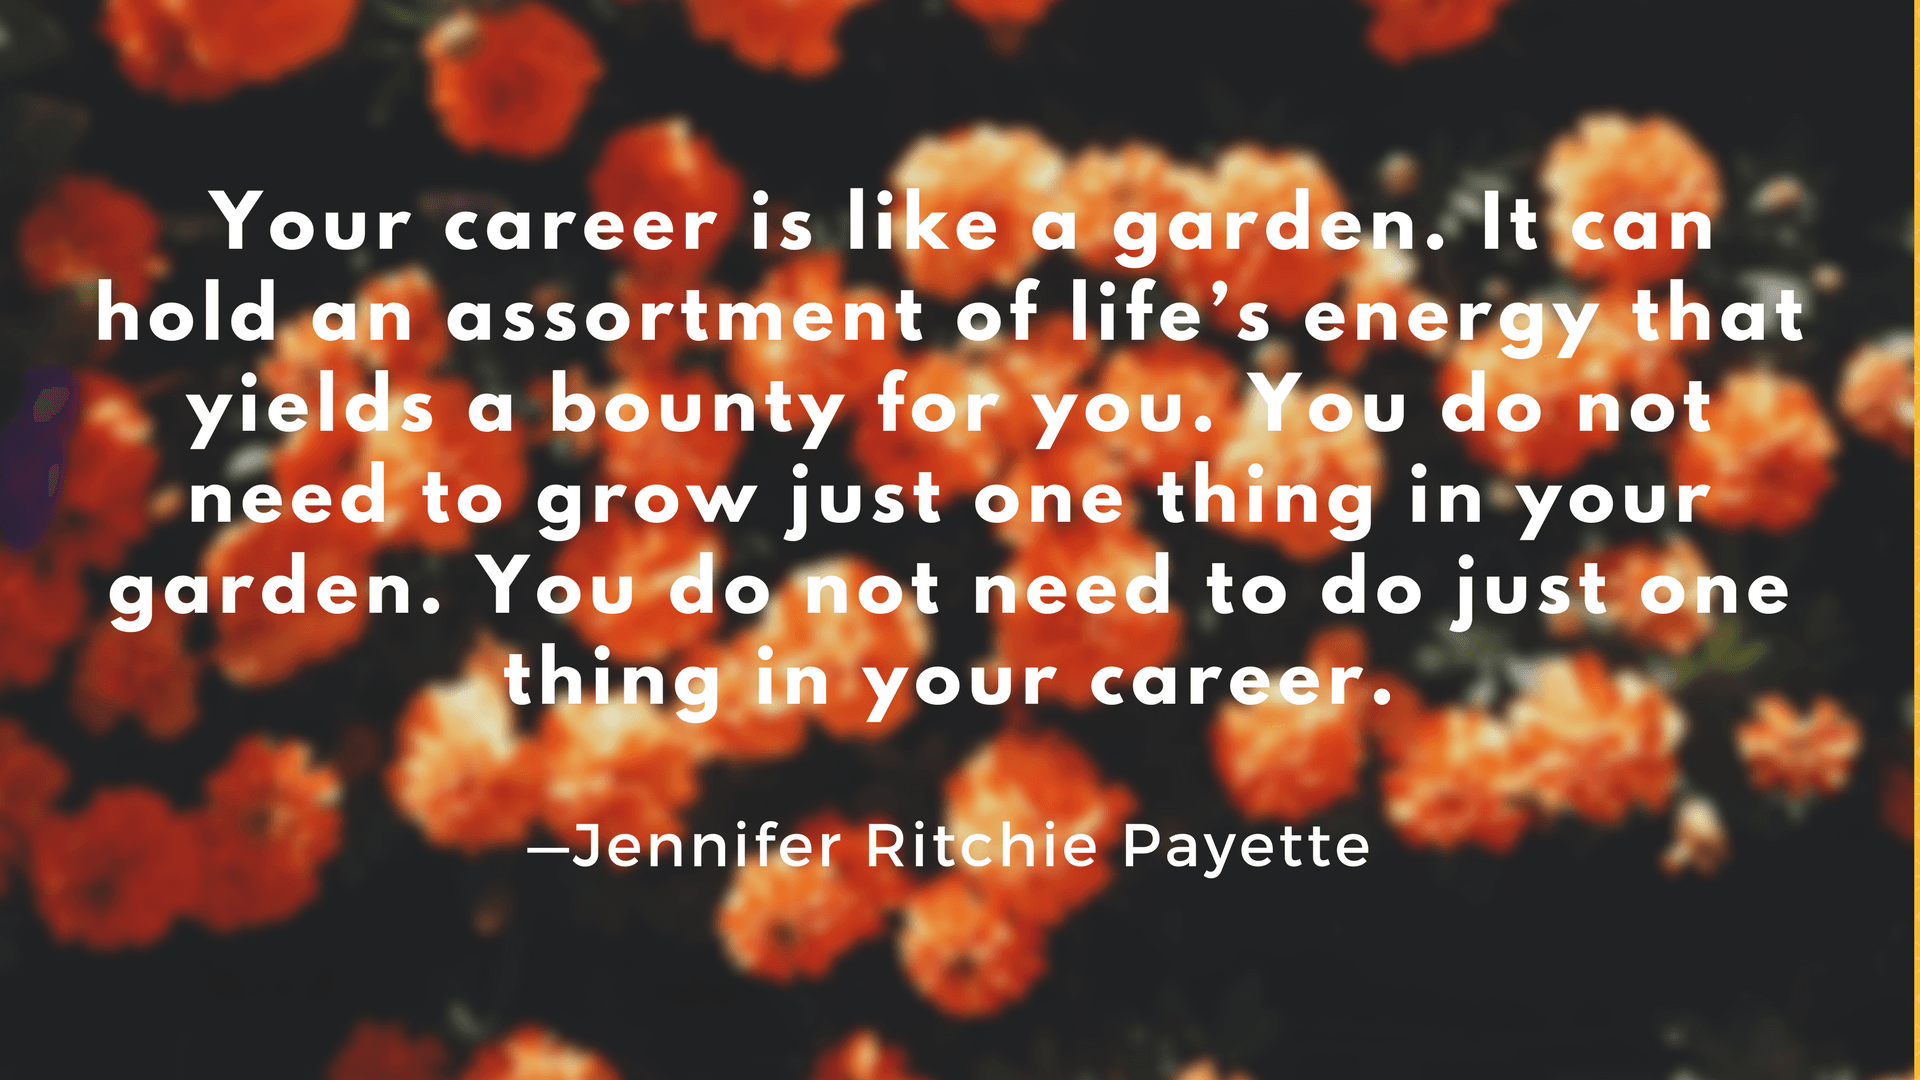 jennifer Ritchie Payette quote